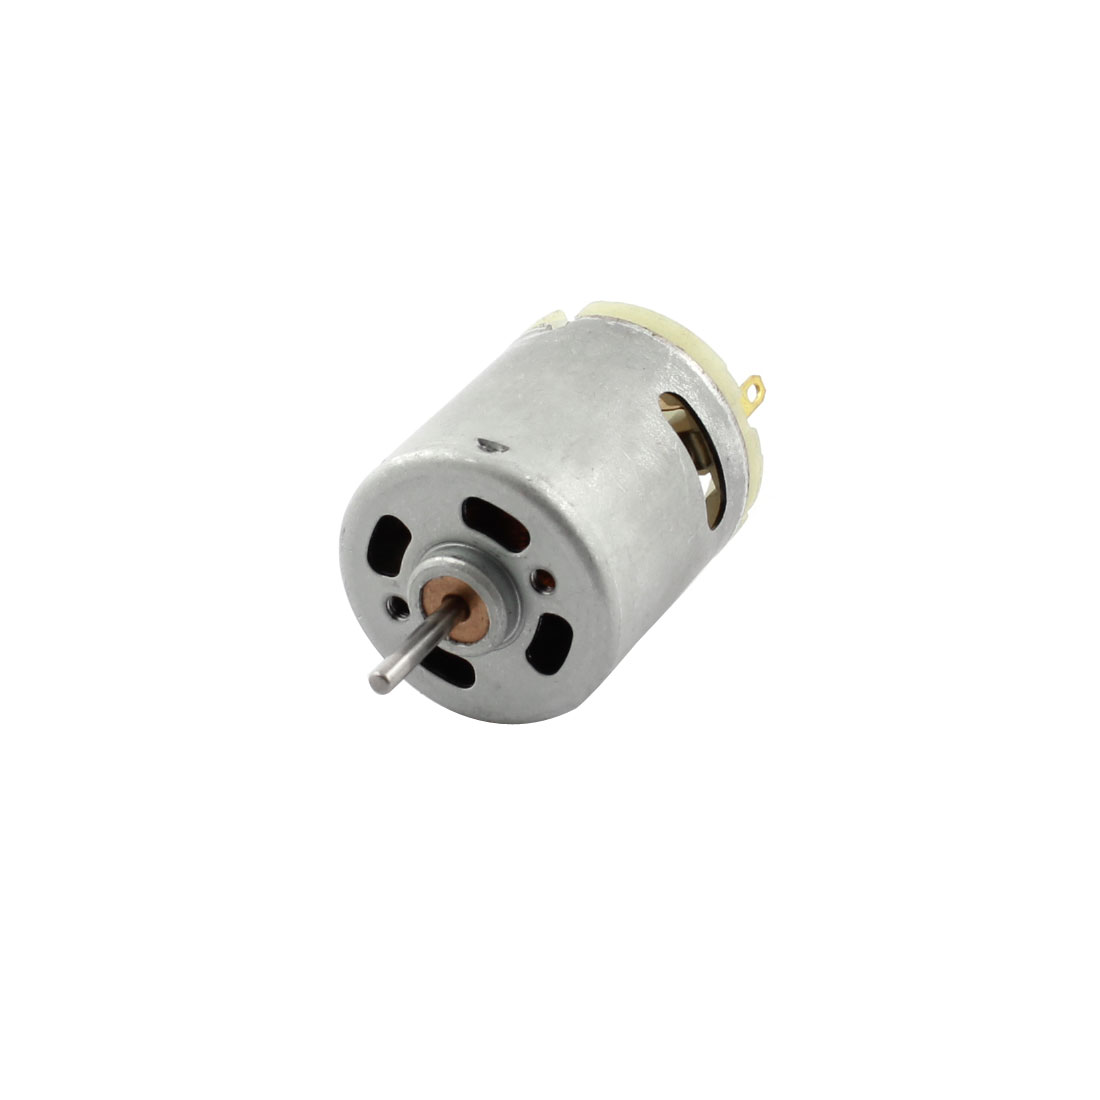 Electric Massager Part 2mm Dia Shaft 29700R/Min Rotary Speed Output High Torque 2-Pin Magnetic Motor DC 12-24V